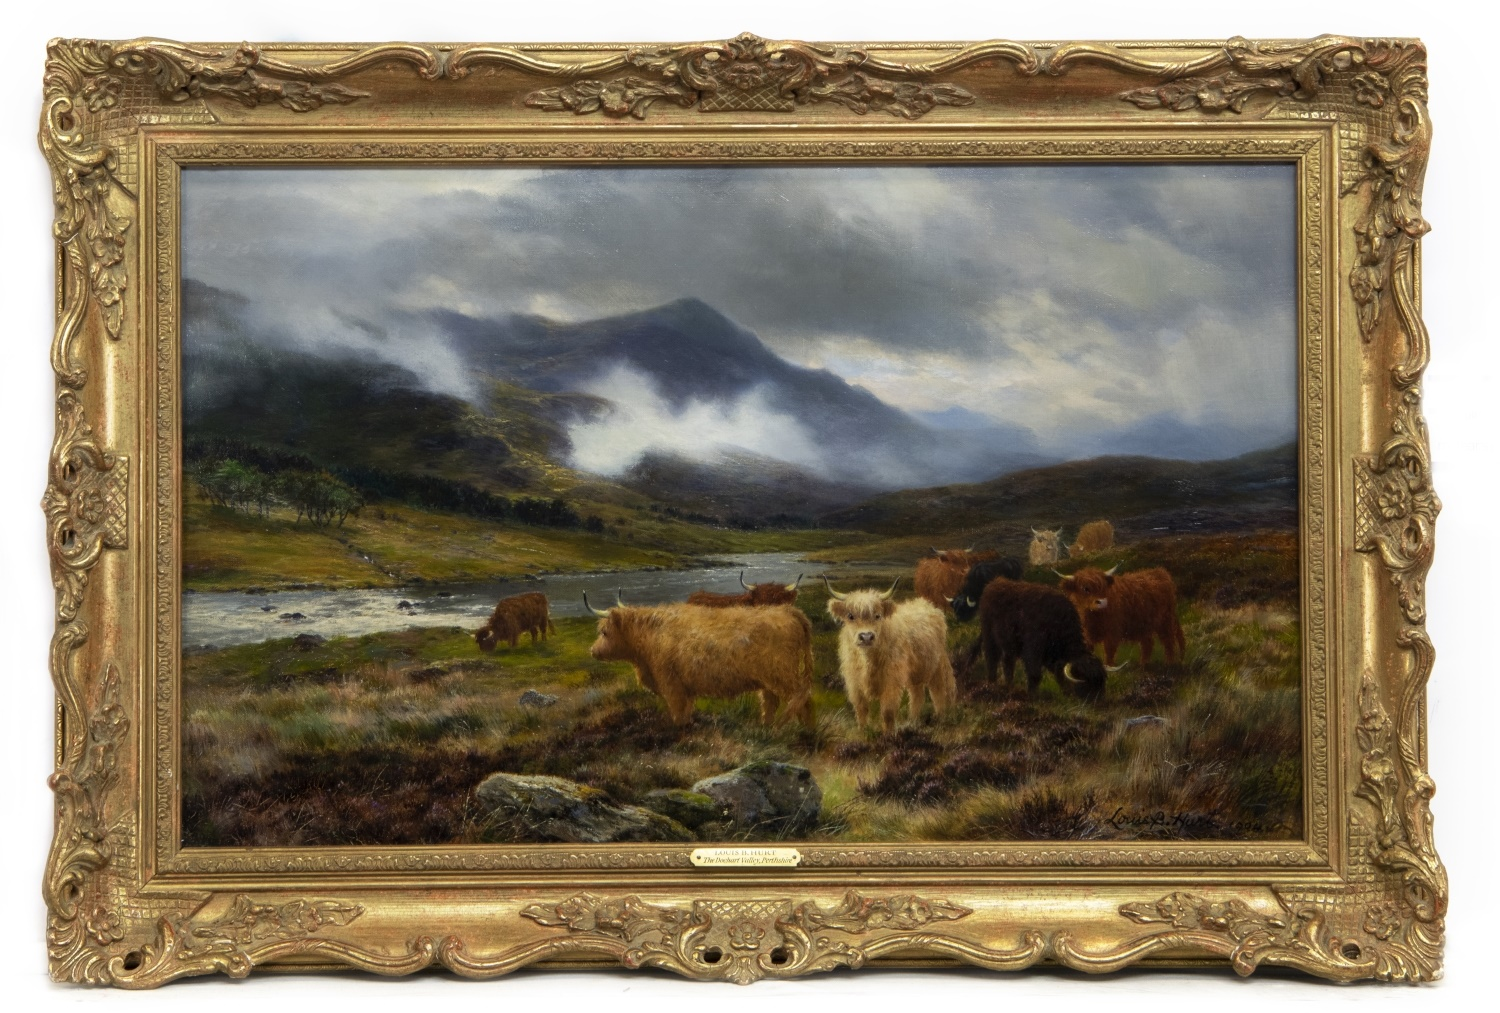 THE DOCHART VALLEY, PERTHSHIRE, AN OIL BY LOUIS BOSWORTH HURT